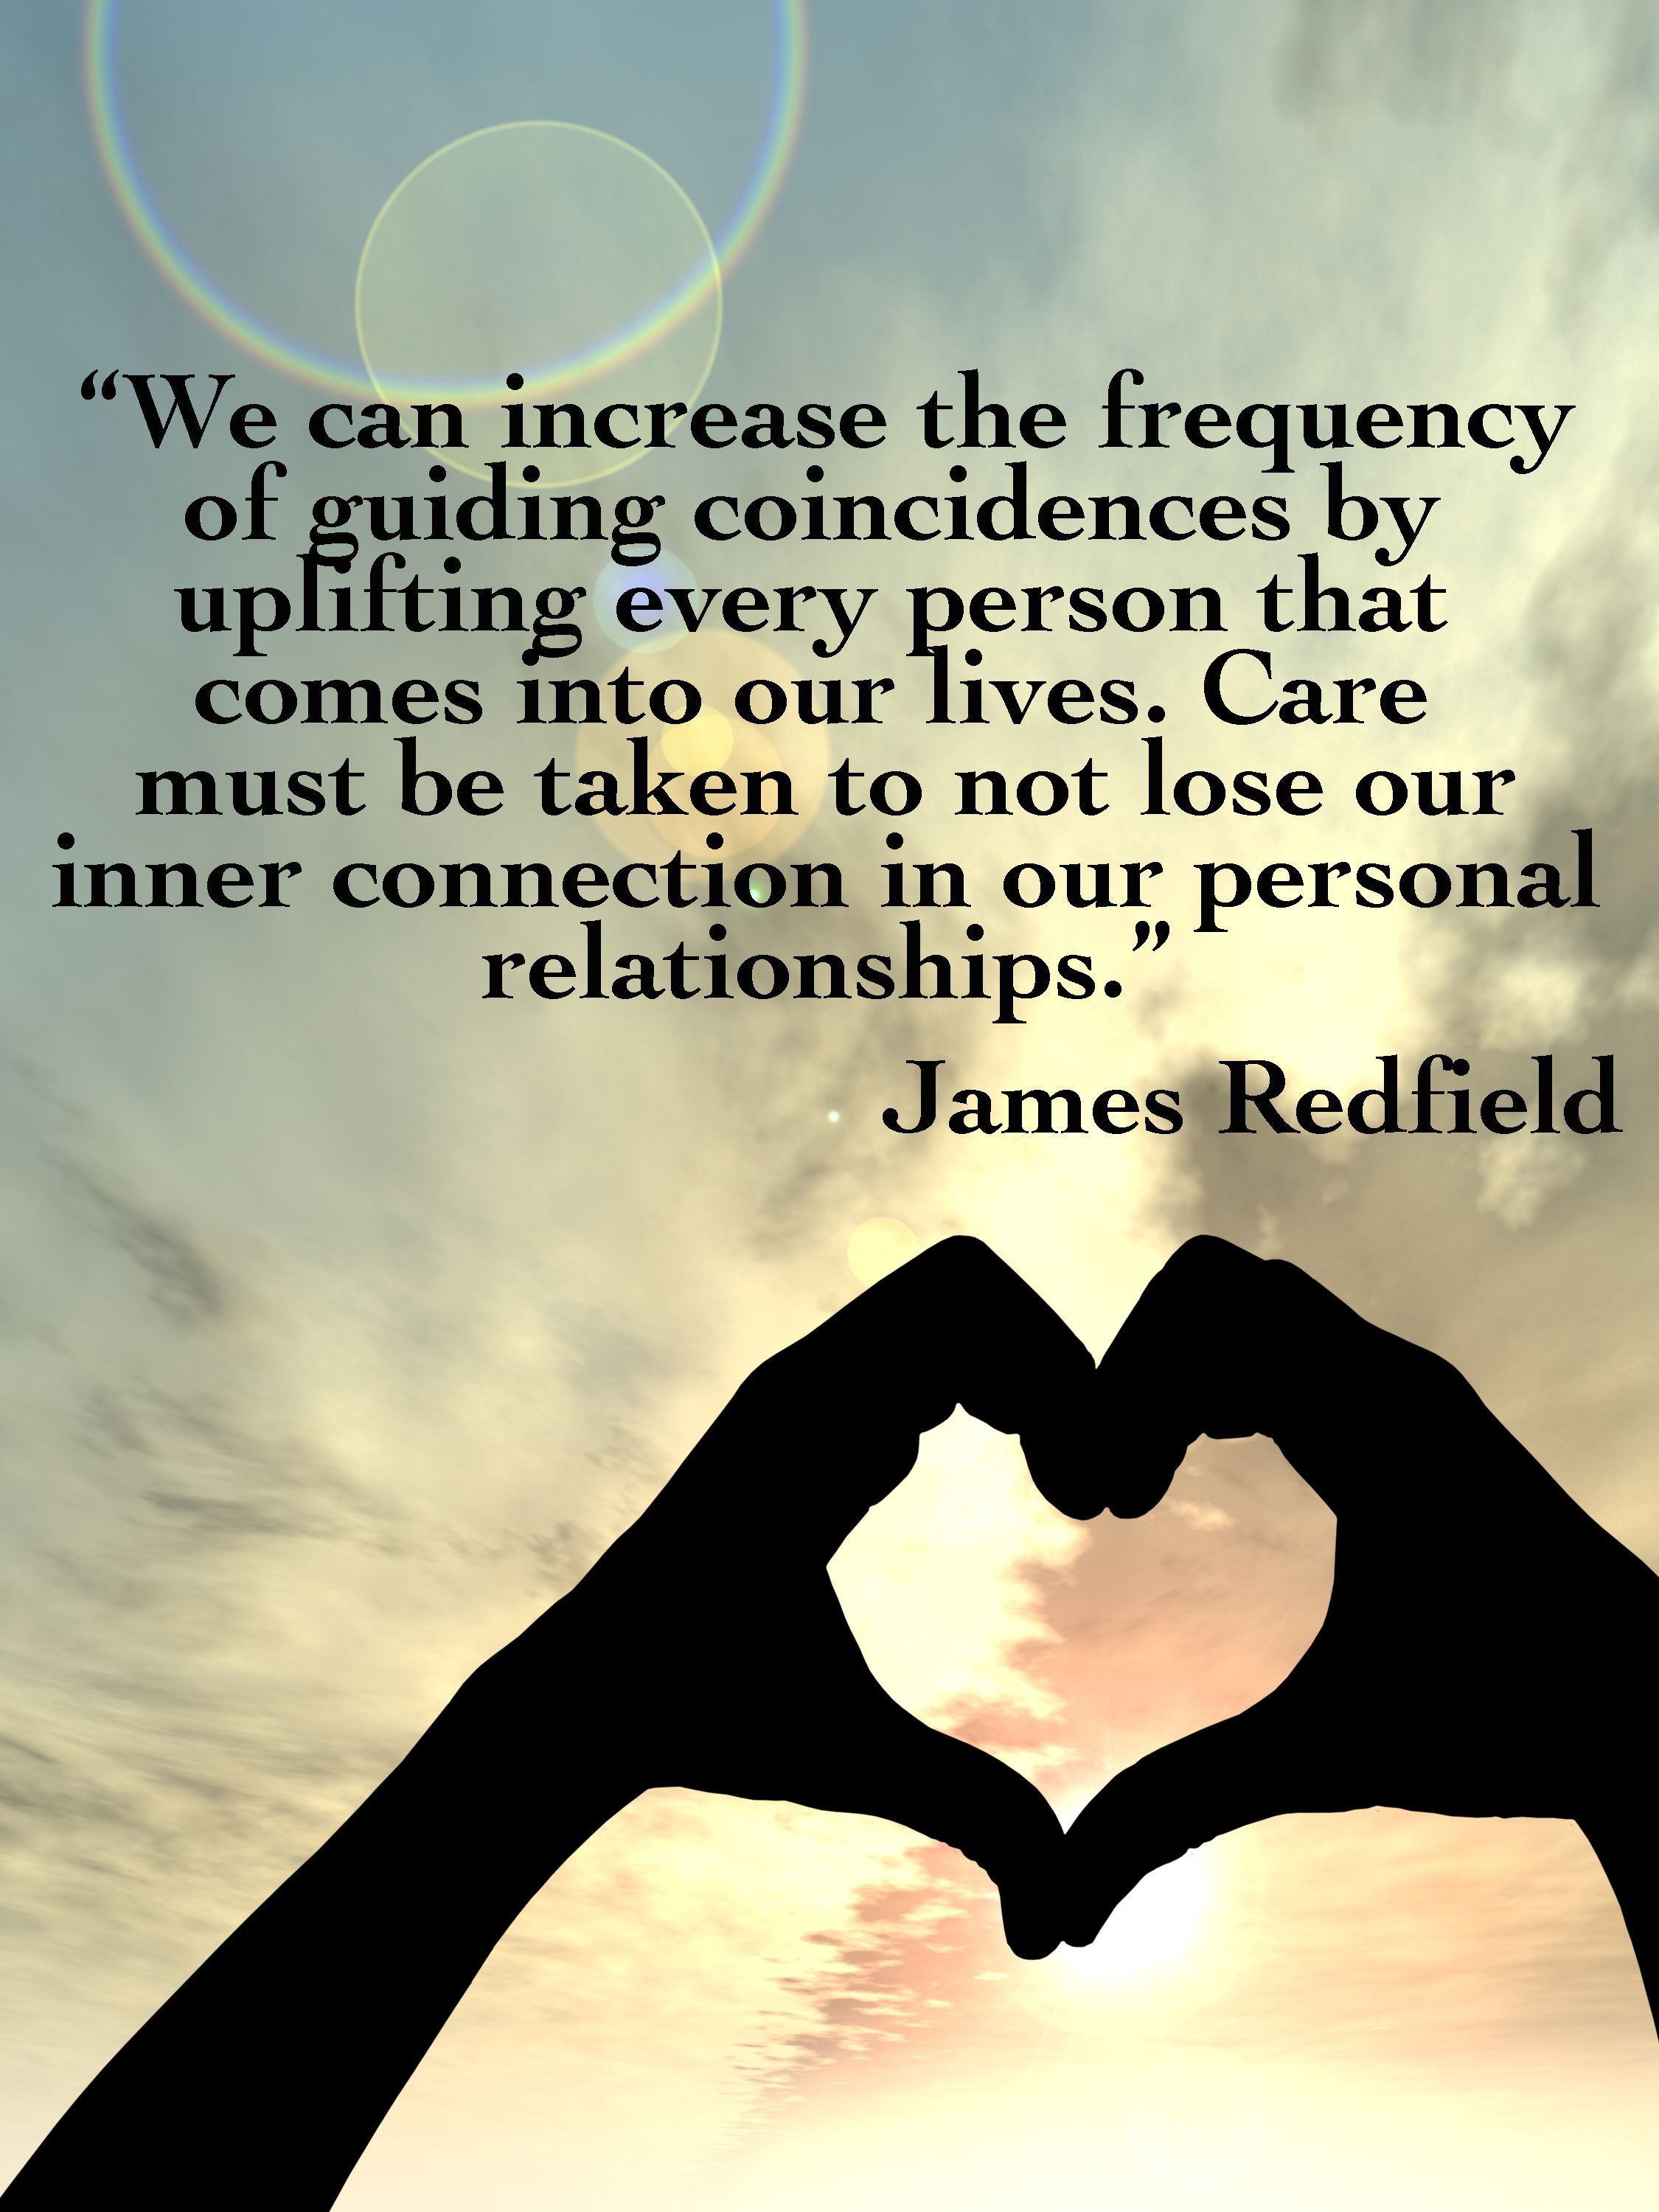 Spiritual Inspirational Quotes Amusing Inspirational And Spiritual Quotesjames Redfield  Celestine